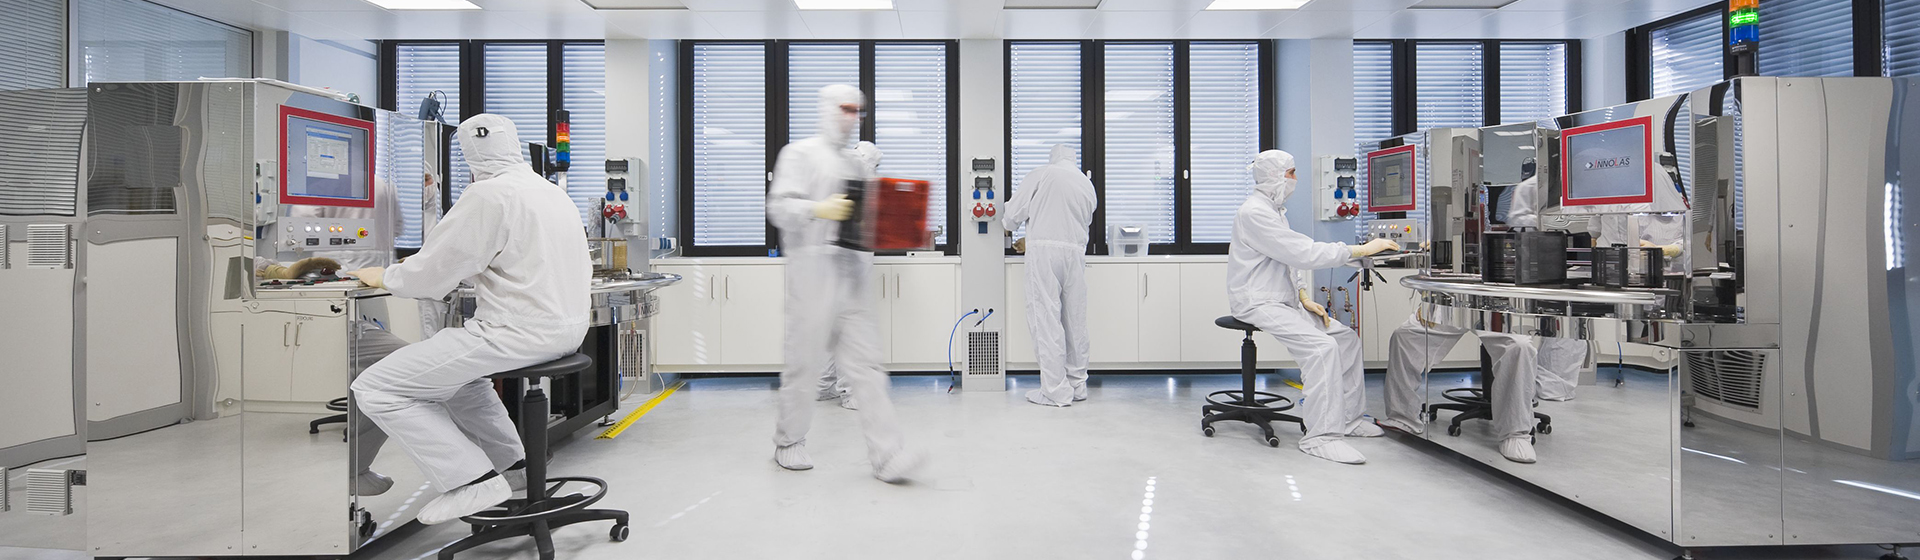 Pharmaceuticals And Cleanroom Humdification